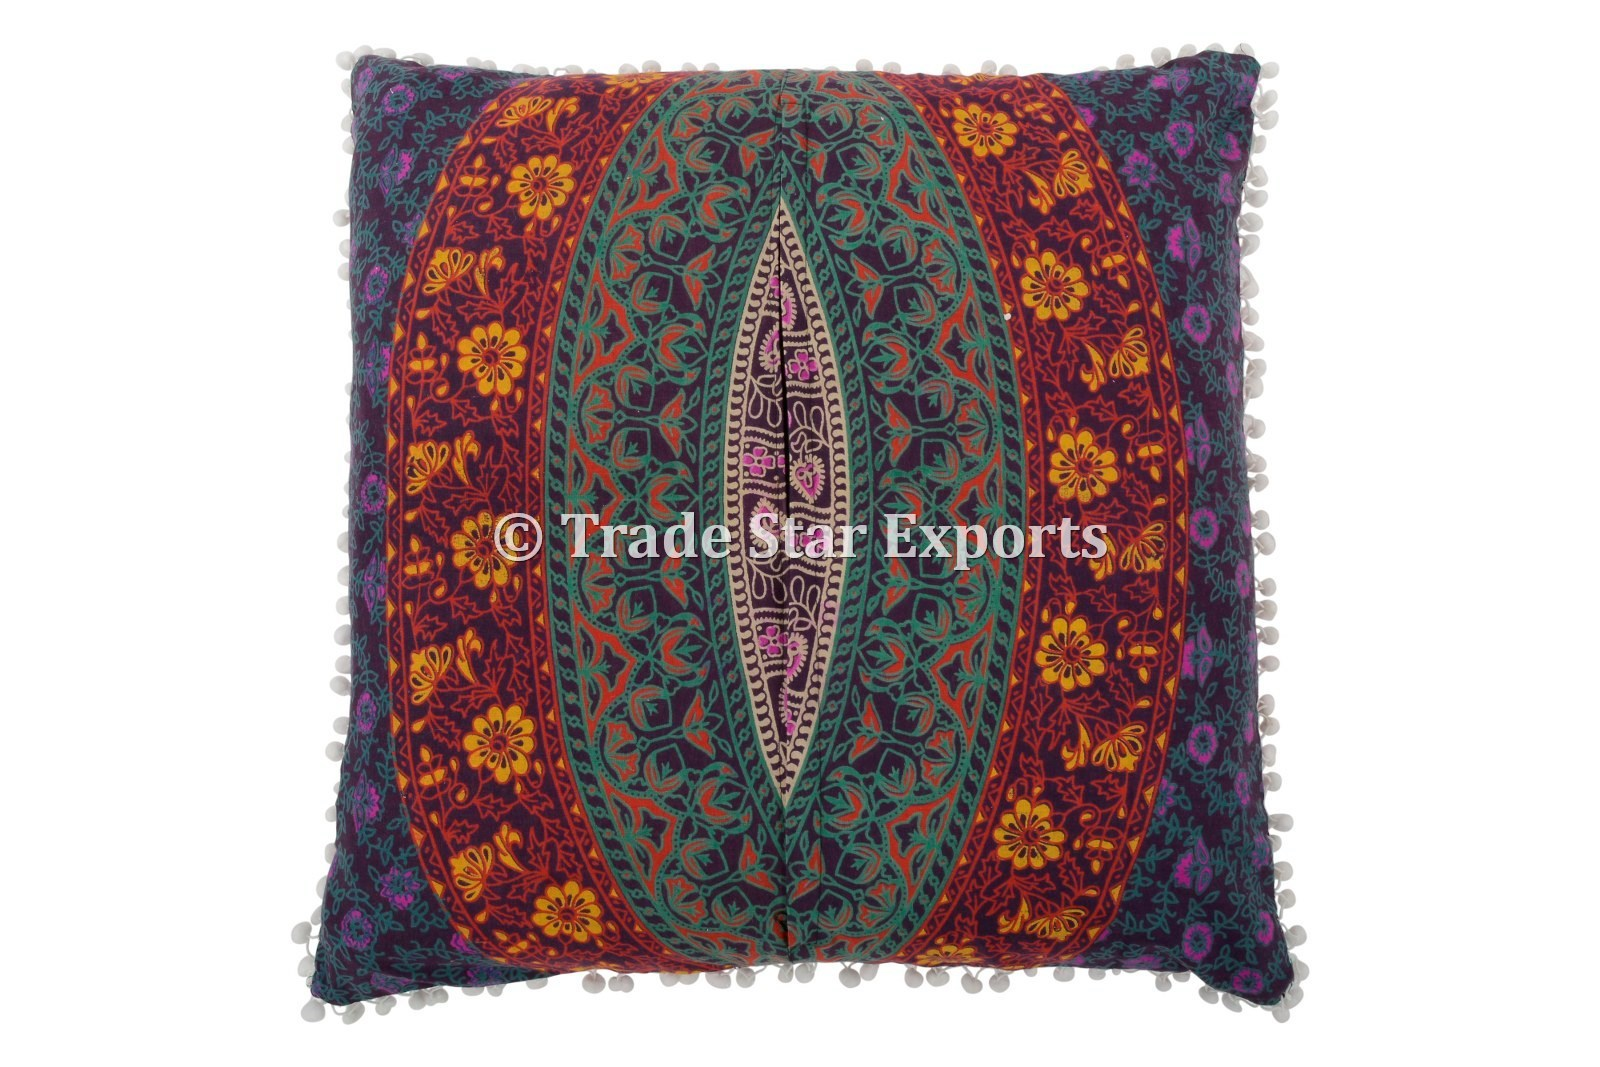 Mandala Indian Cotton Floral Euro Sham Pillow Sham Cover Size 66 X 66 Cms 26 X 26 Inches Rs 450 Piece Id 13785137073